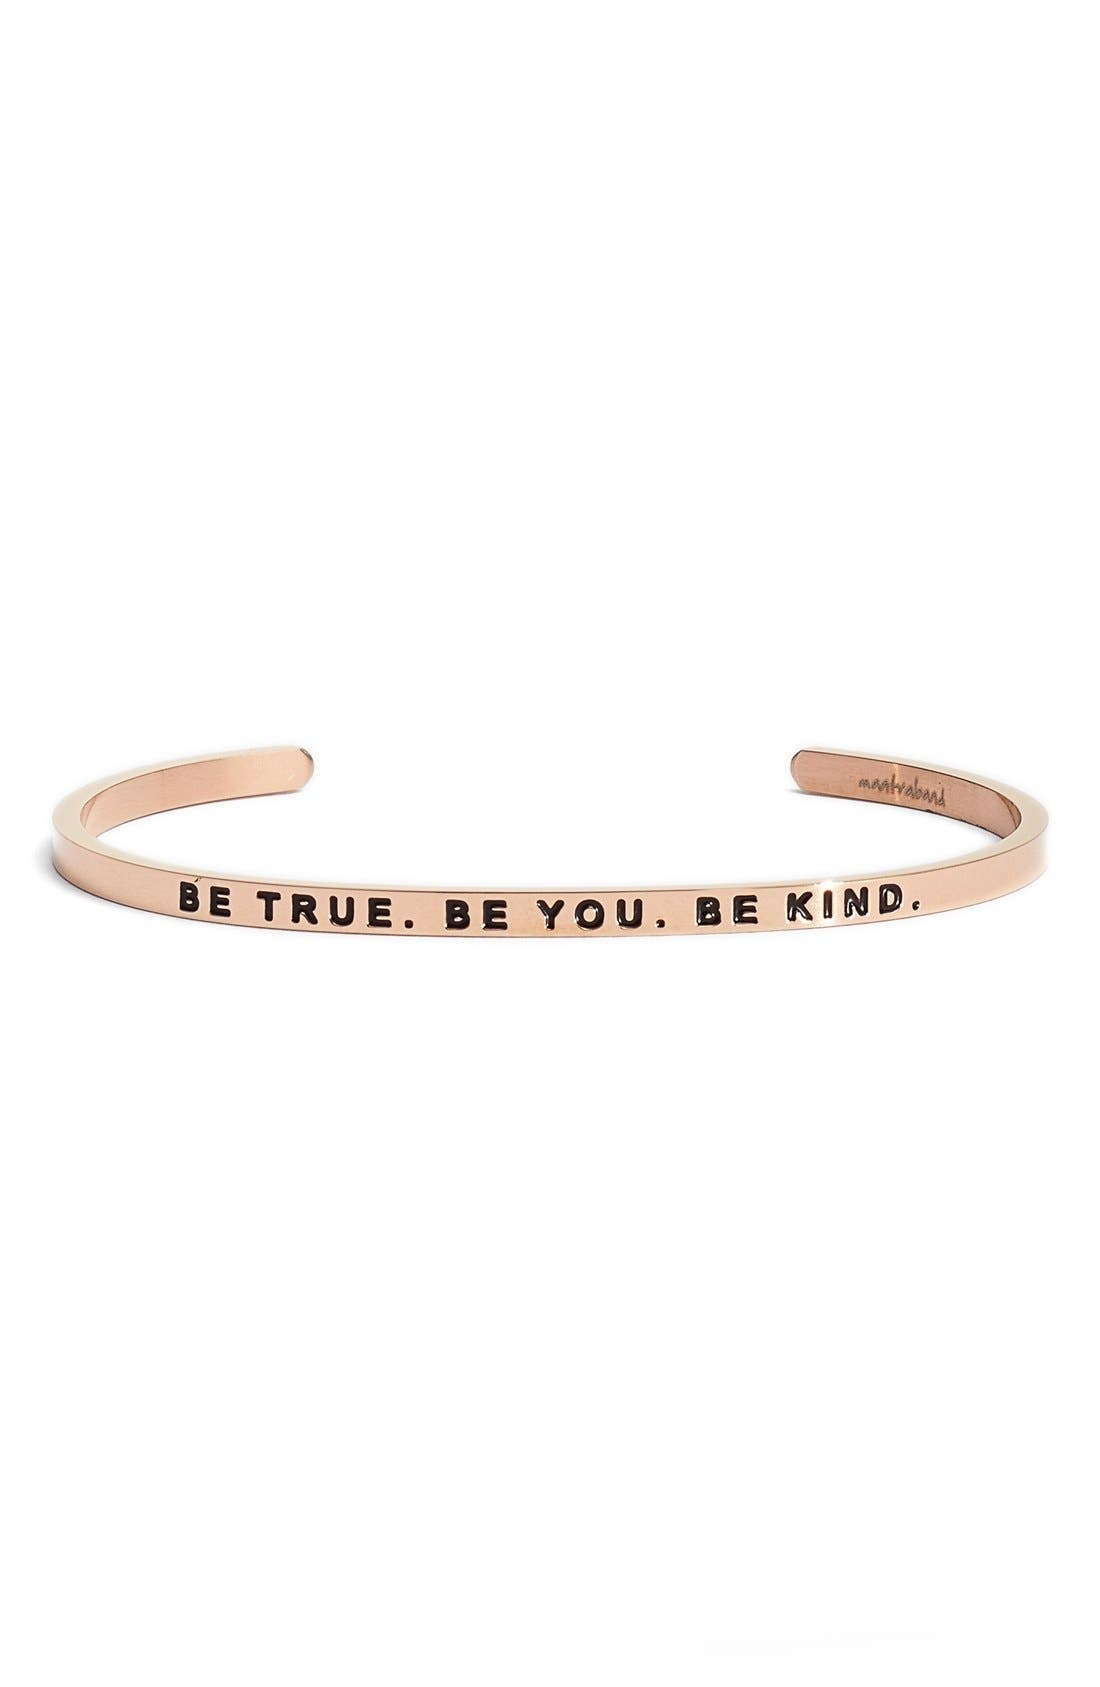 MantraBand® 'Be True. Be You. Be Kind' Cuff